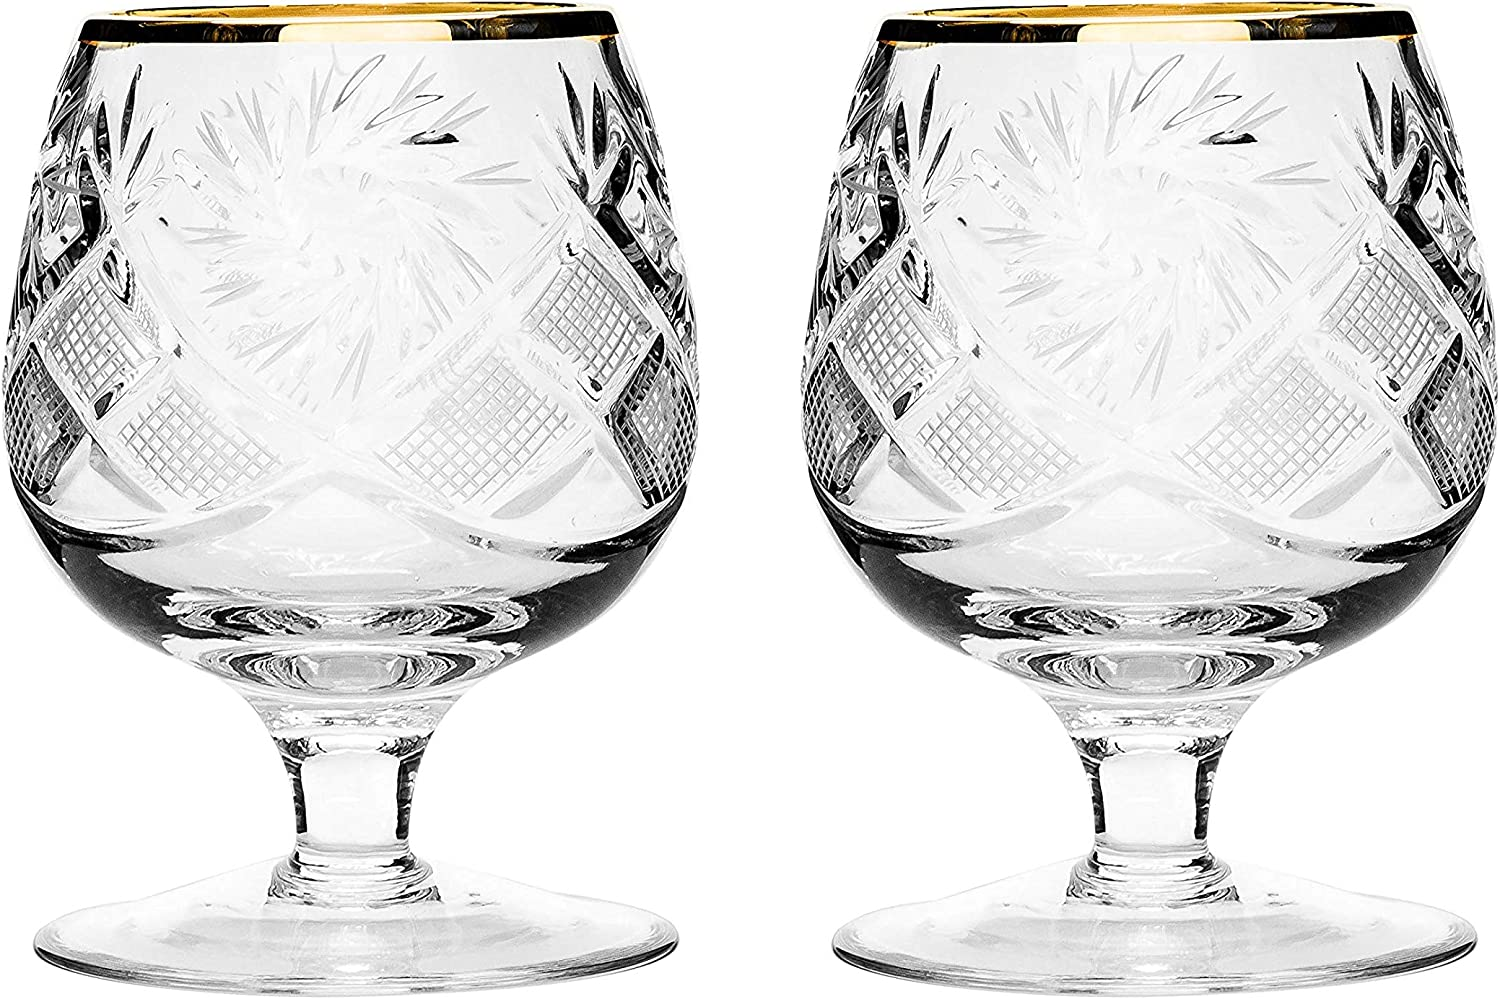 Set of 2 Hand Max 47% OFF Made Vintage High quality new Crystal Brandy Glasses Cognac Snif